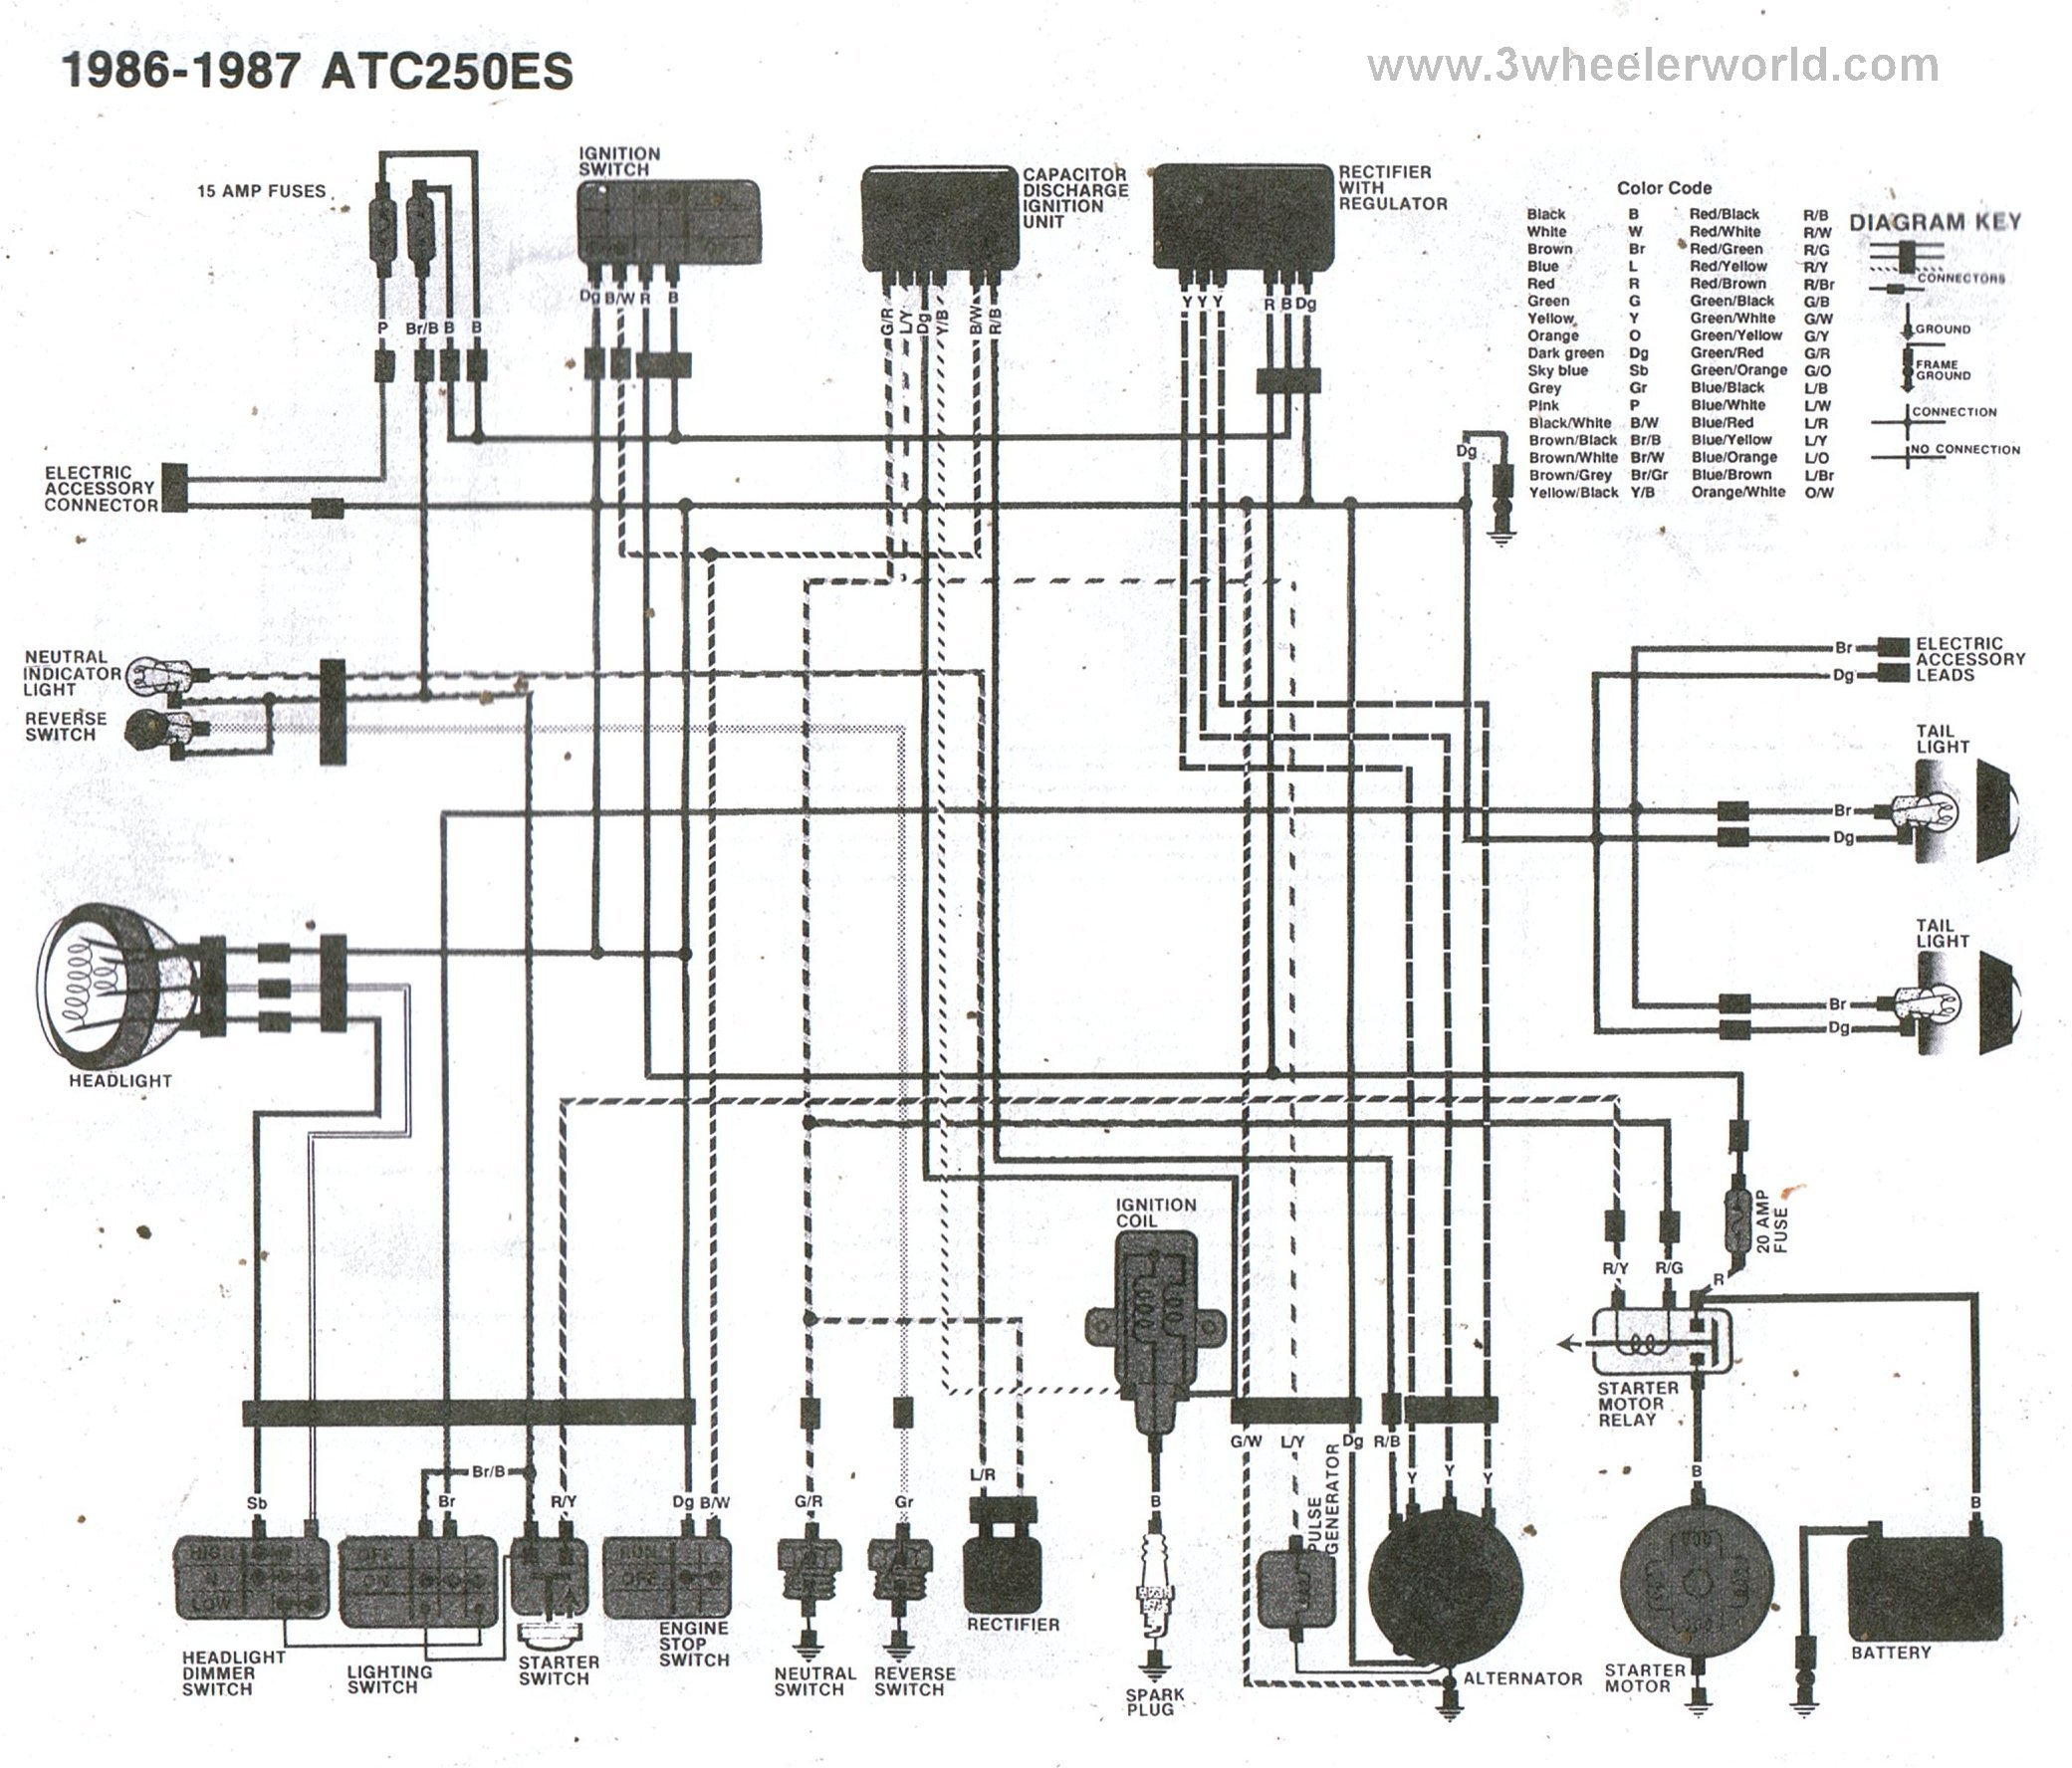 ATC250ESx86Thru87 honda atv 300 wiring diagram honda wiring diagrams instruction trx350 wiring diagram 1987 at aneh.co